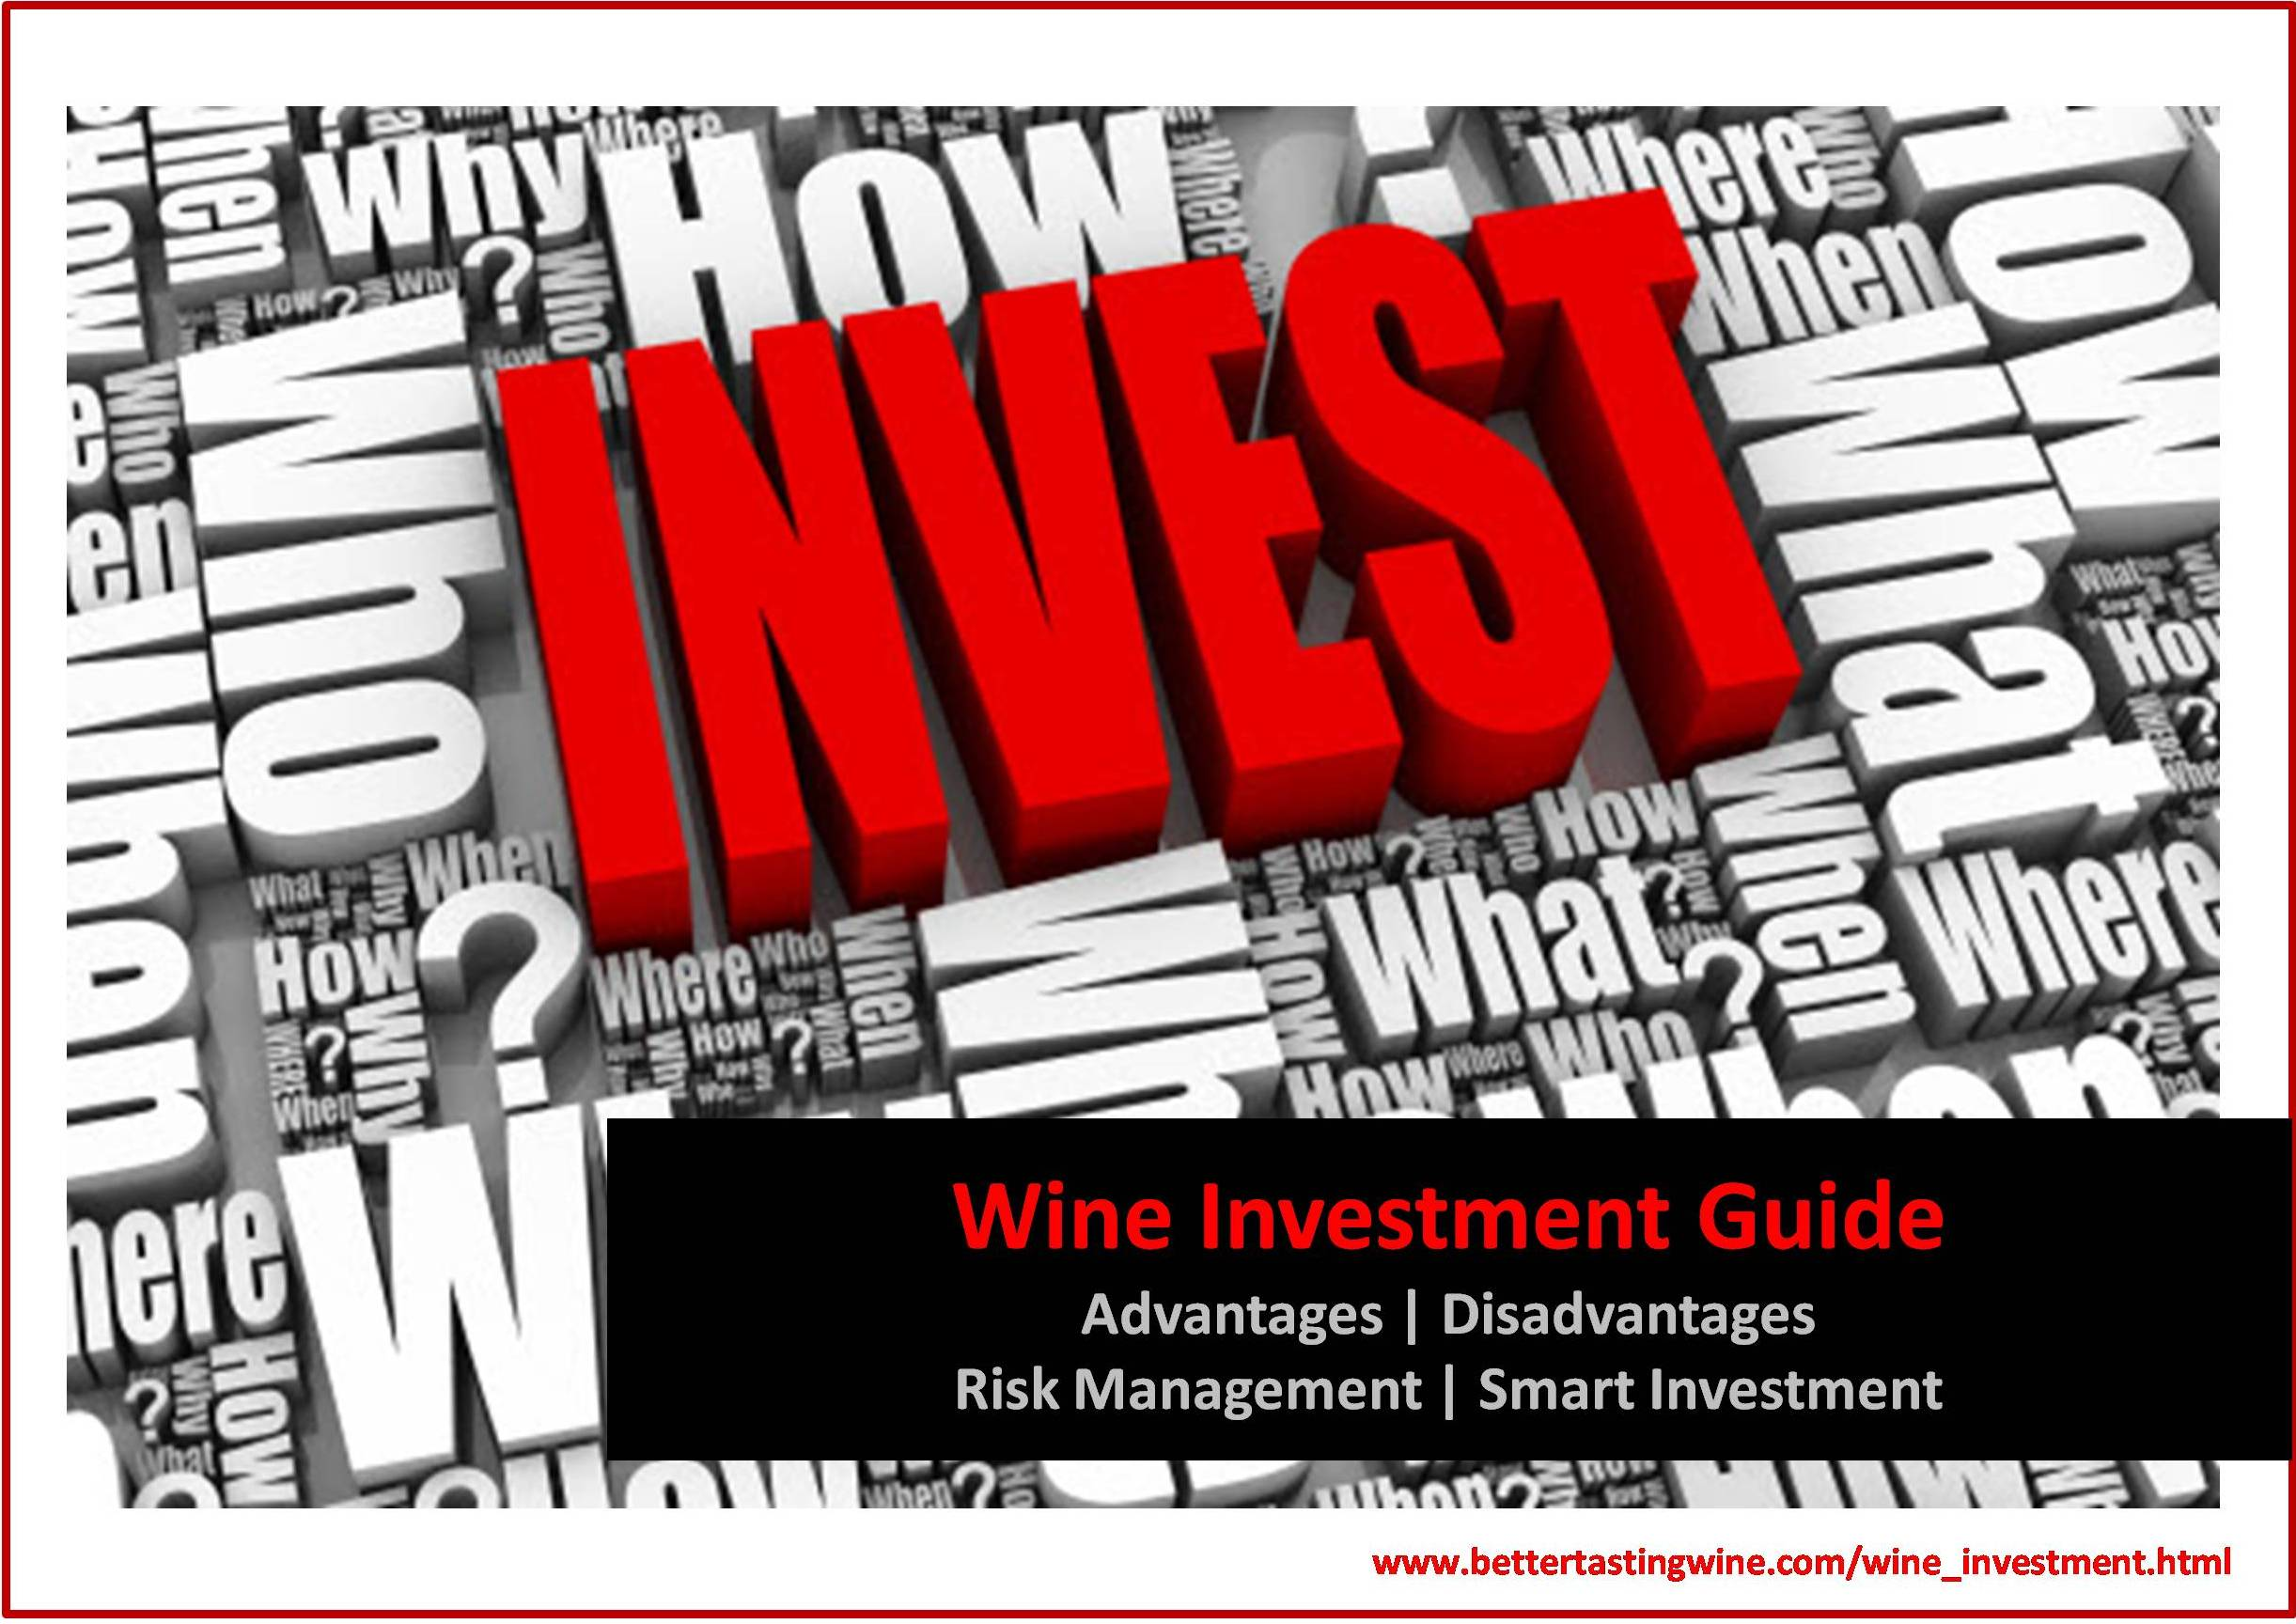 Wine Investment Guide